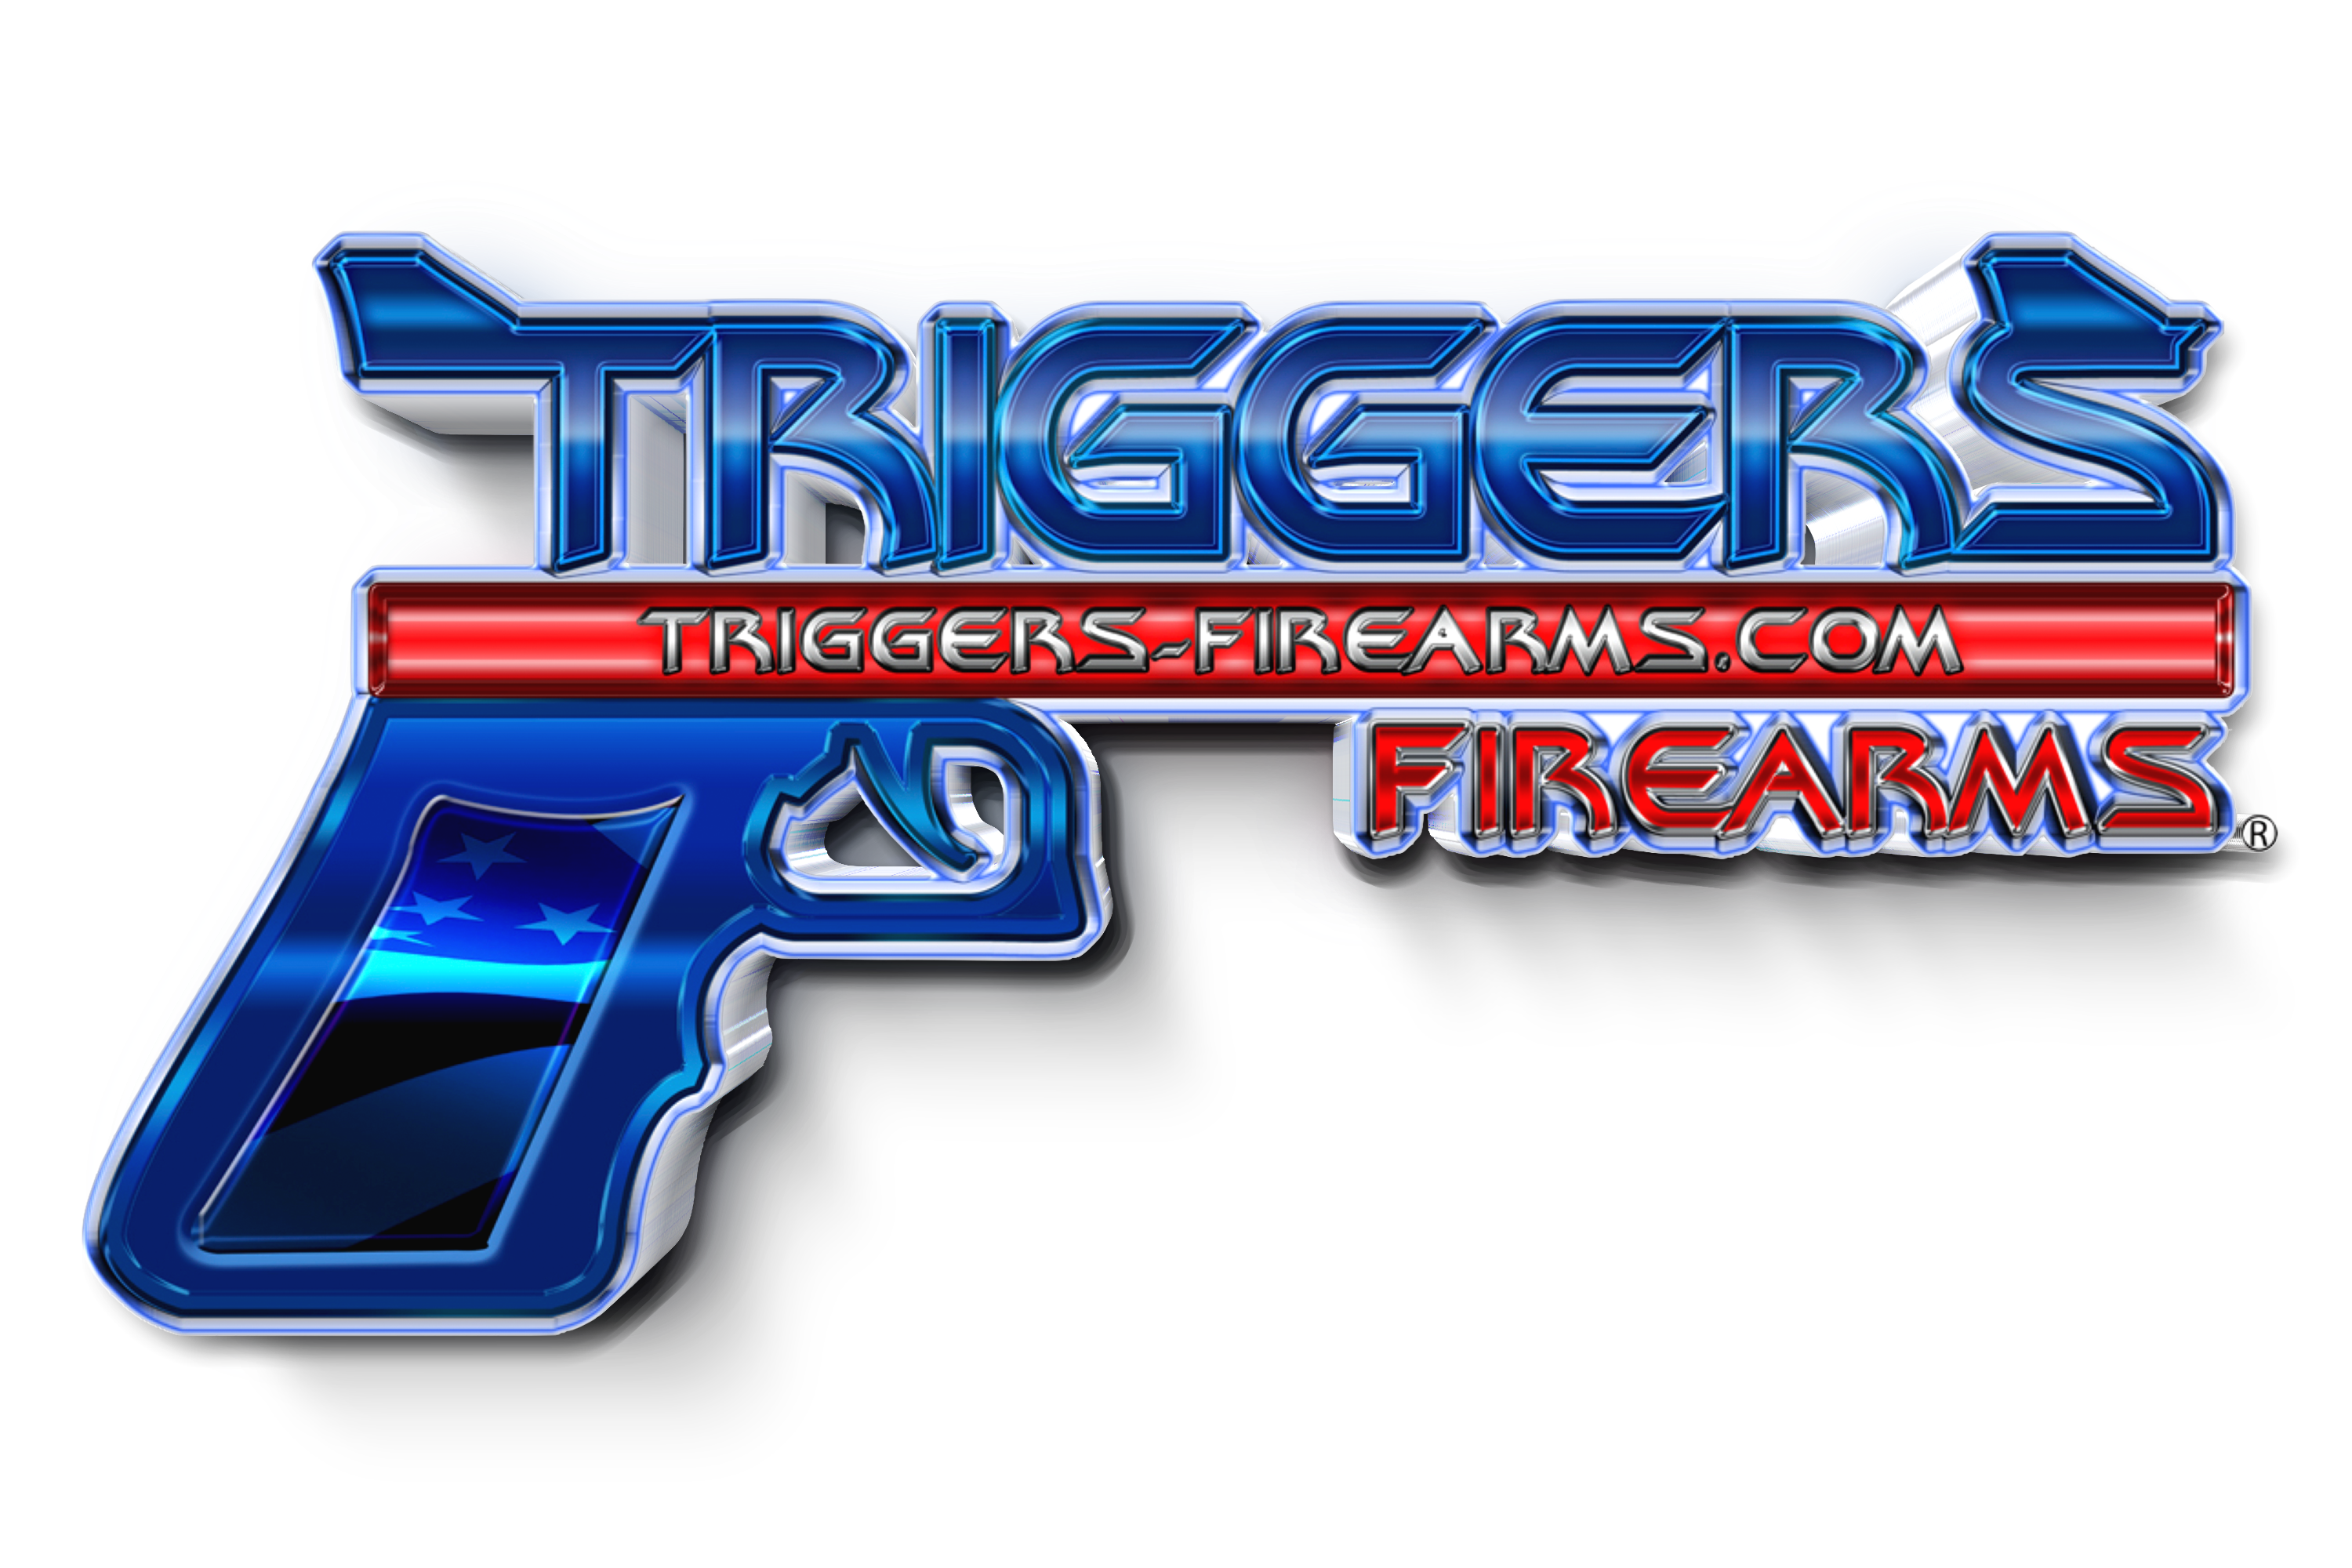 Triggers Firearms